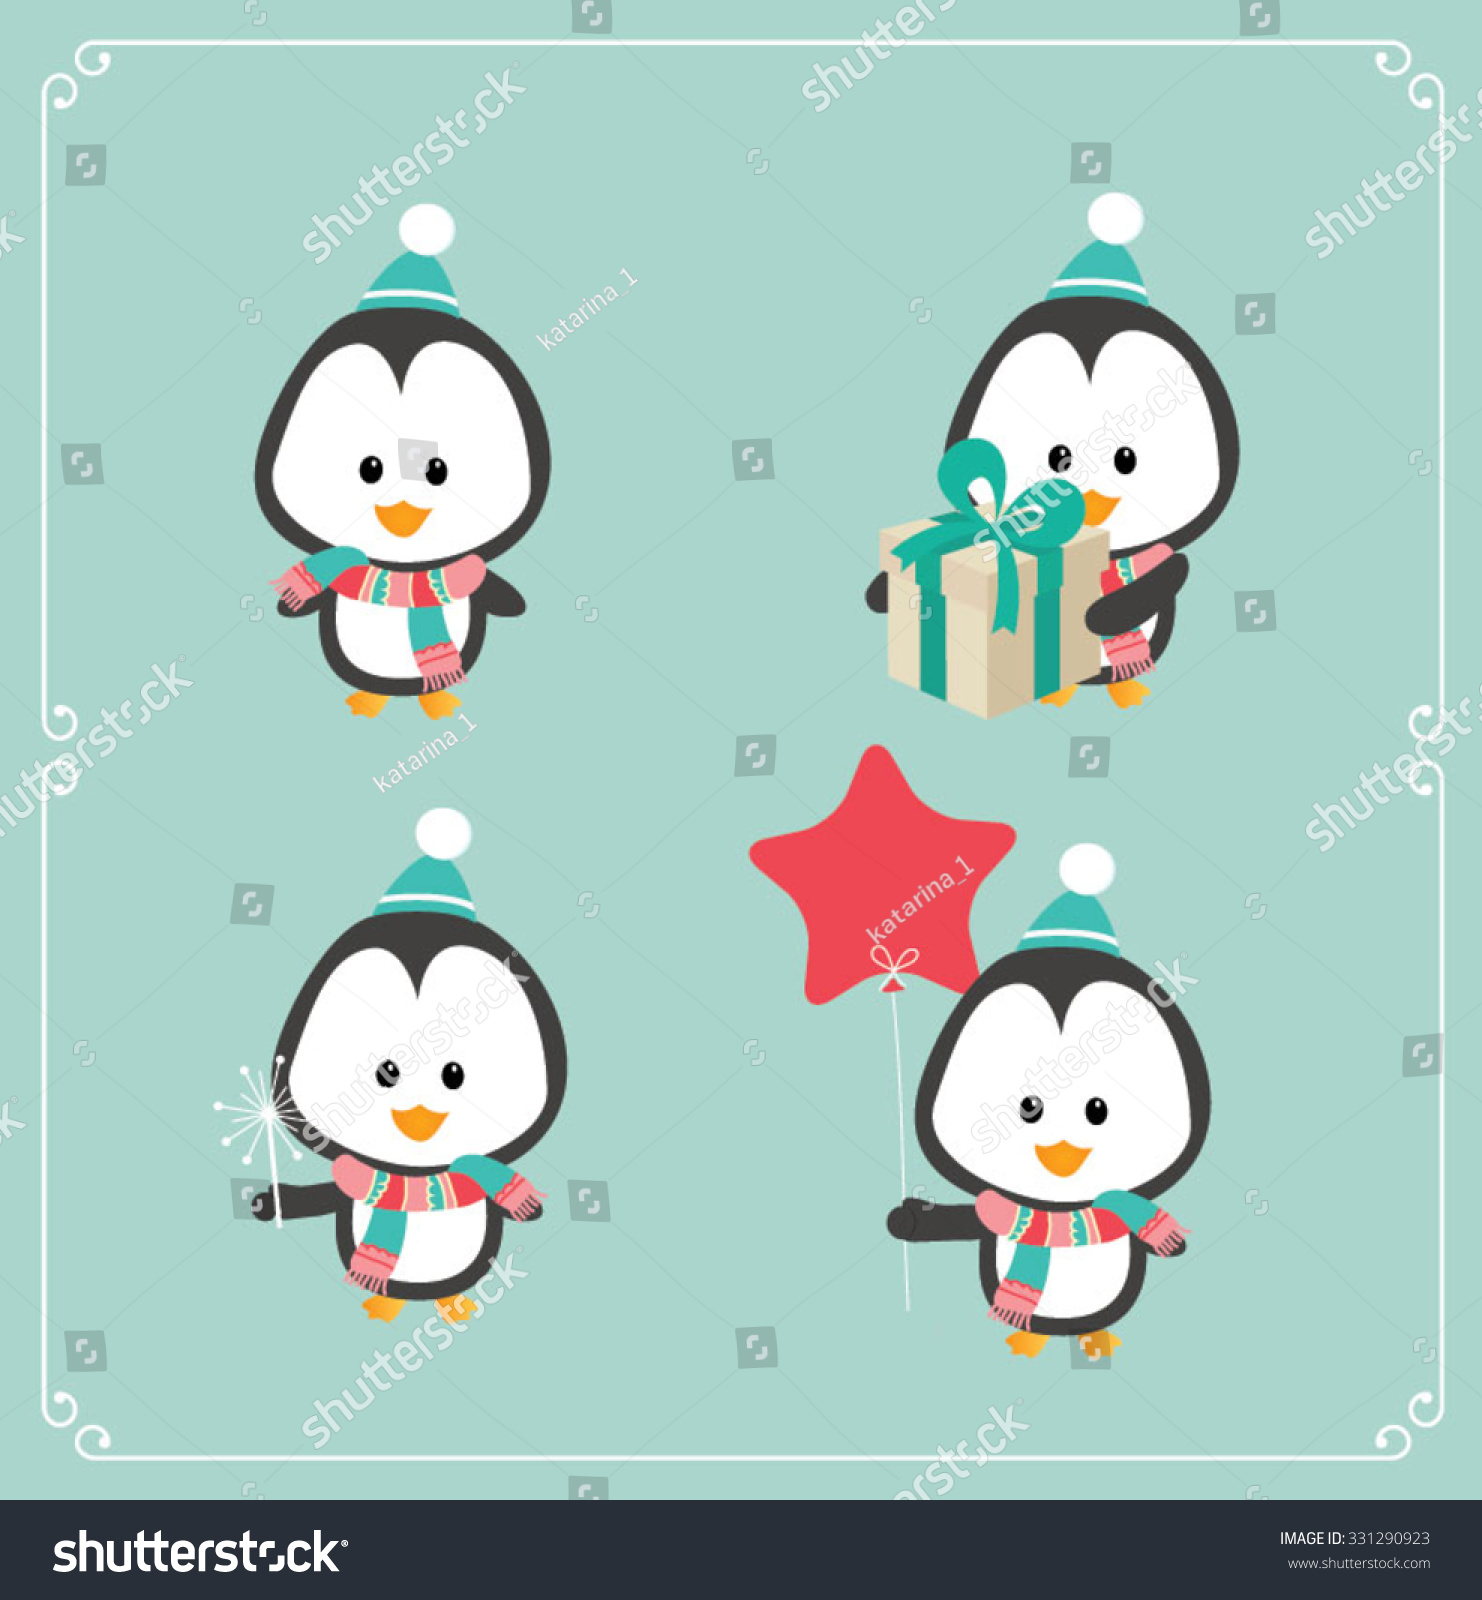 Shutterstock set of cute christmas character penguin vector